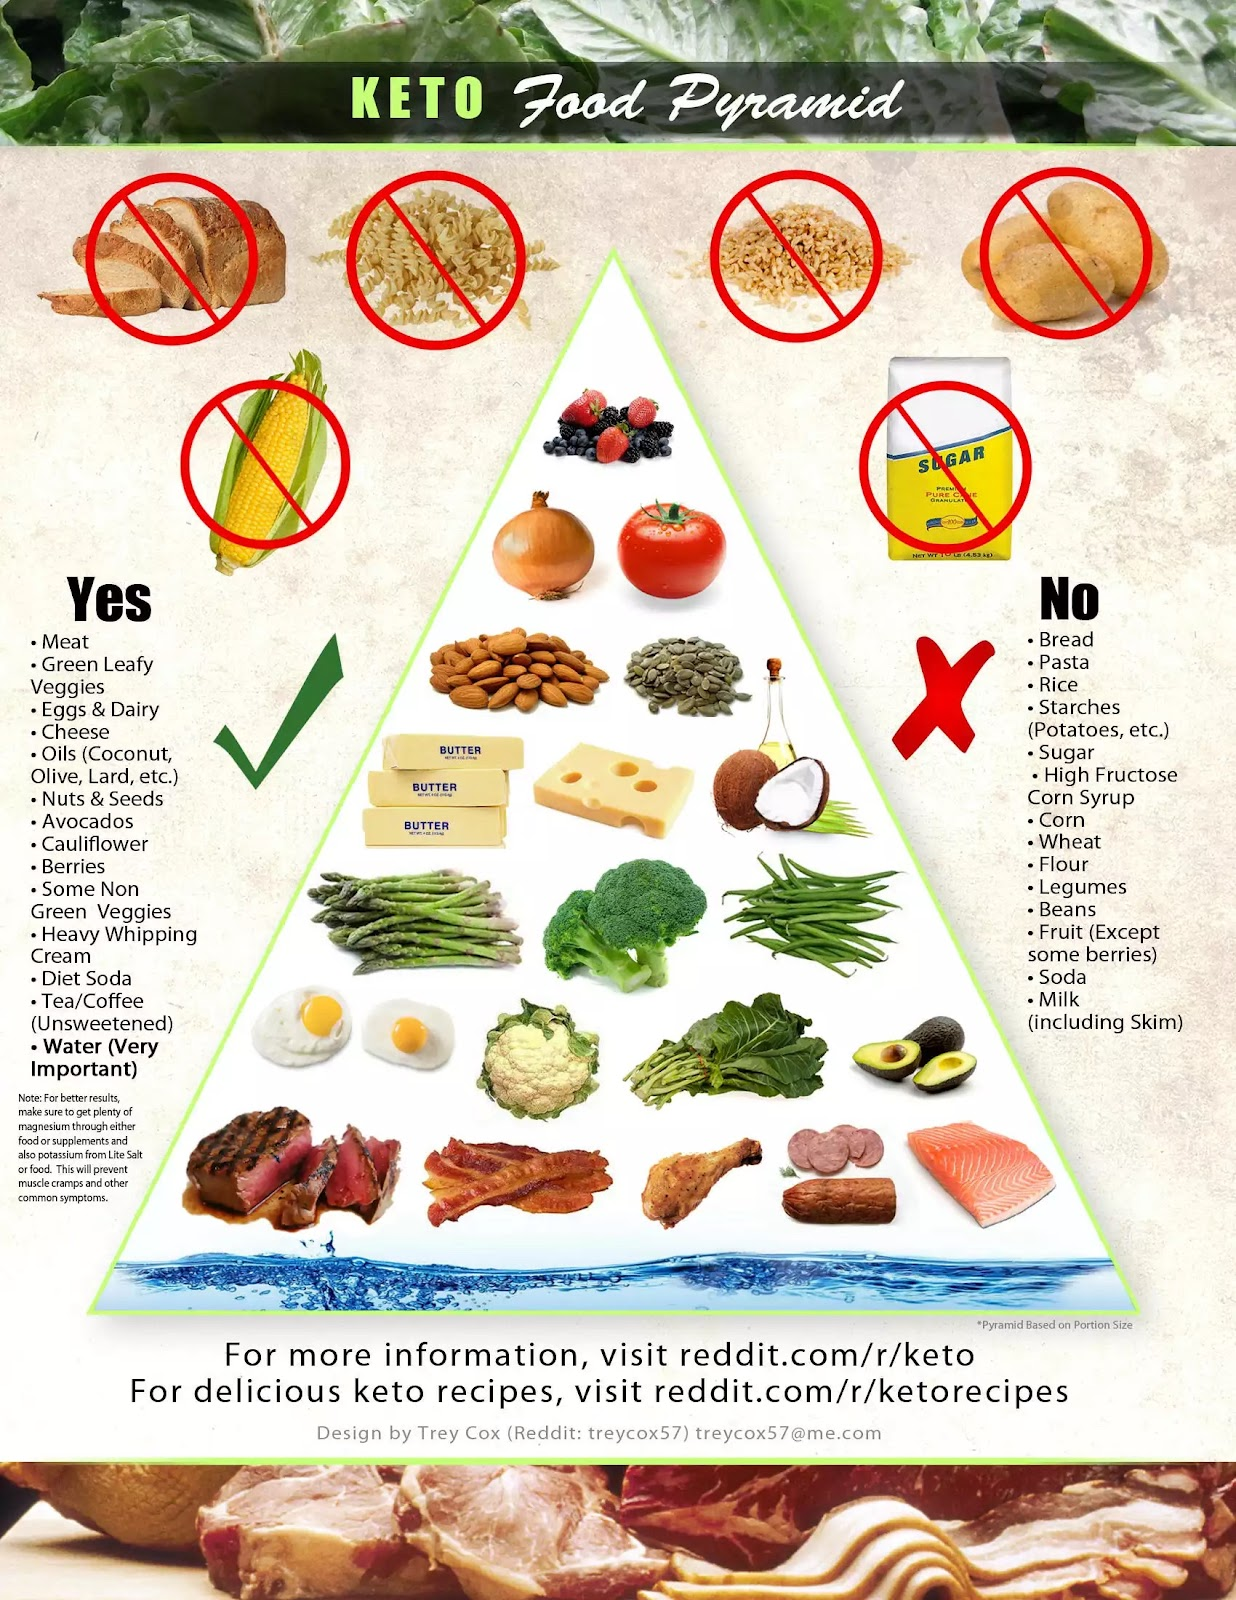 keto food pyramid.JPG